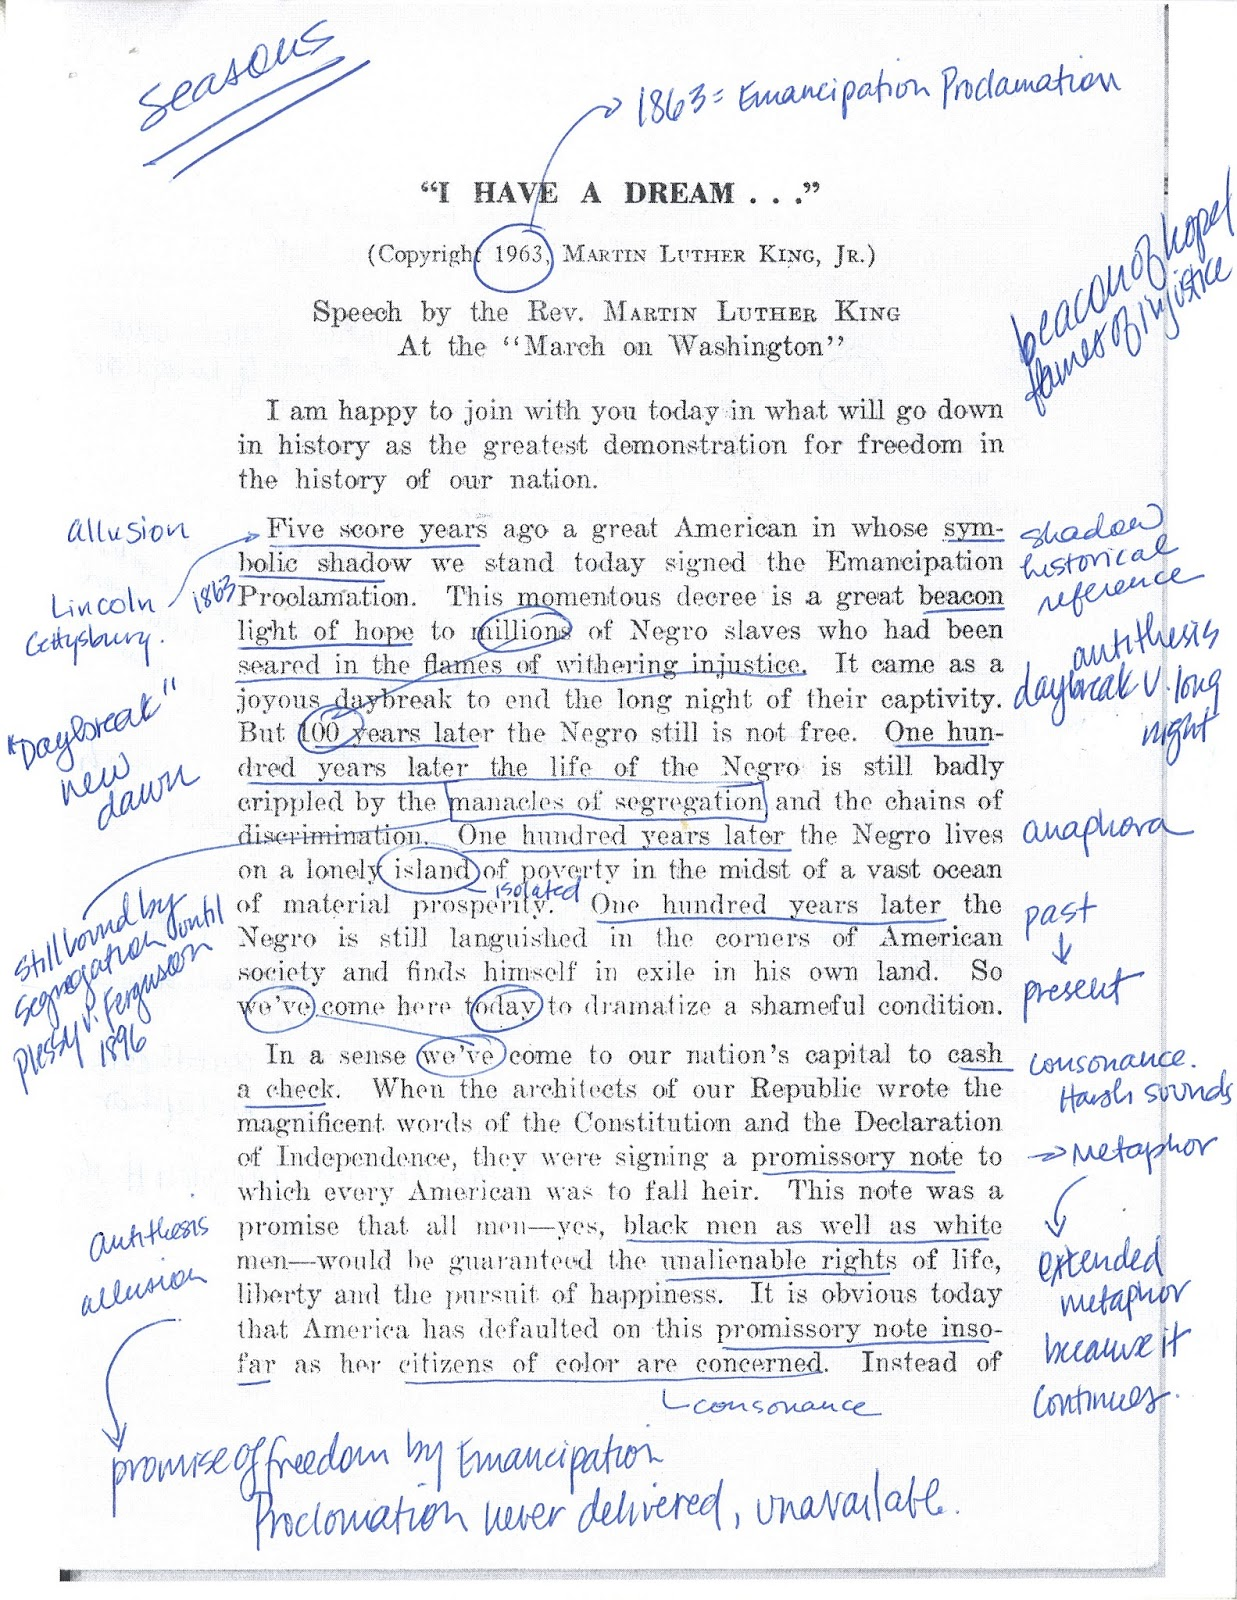 dr king essay In his speeches and essays, dr martin luther king, jr employs a variety of creative writing techniques to add imagery to his writings, to enhance his themes and the inspirational tone of his work, and, most importantly, to reach a broad audience for his ideas in his i have a dream speech, for.